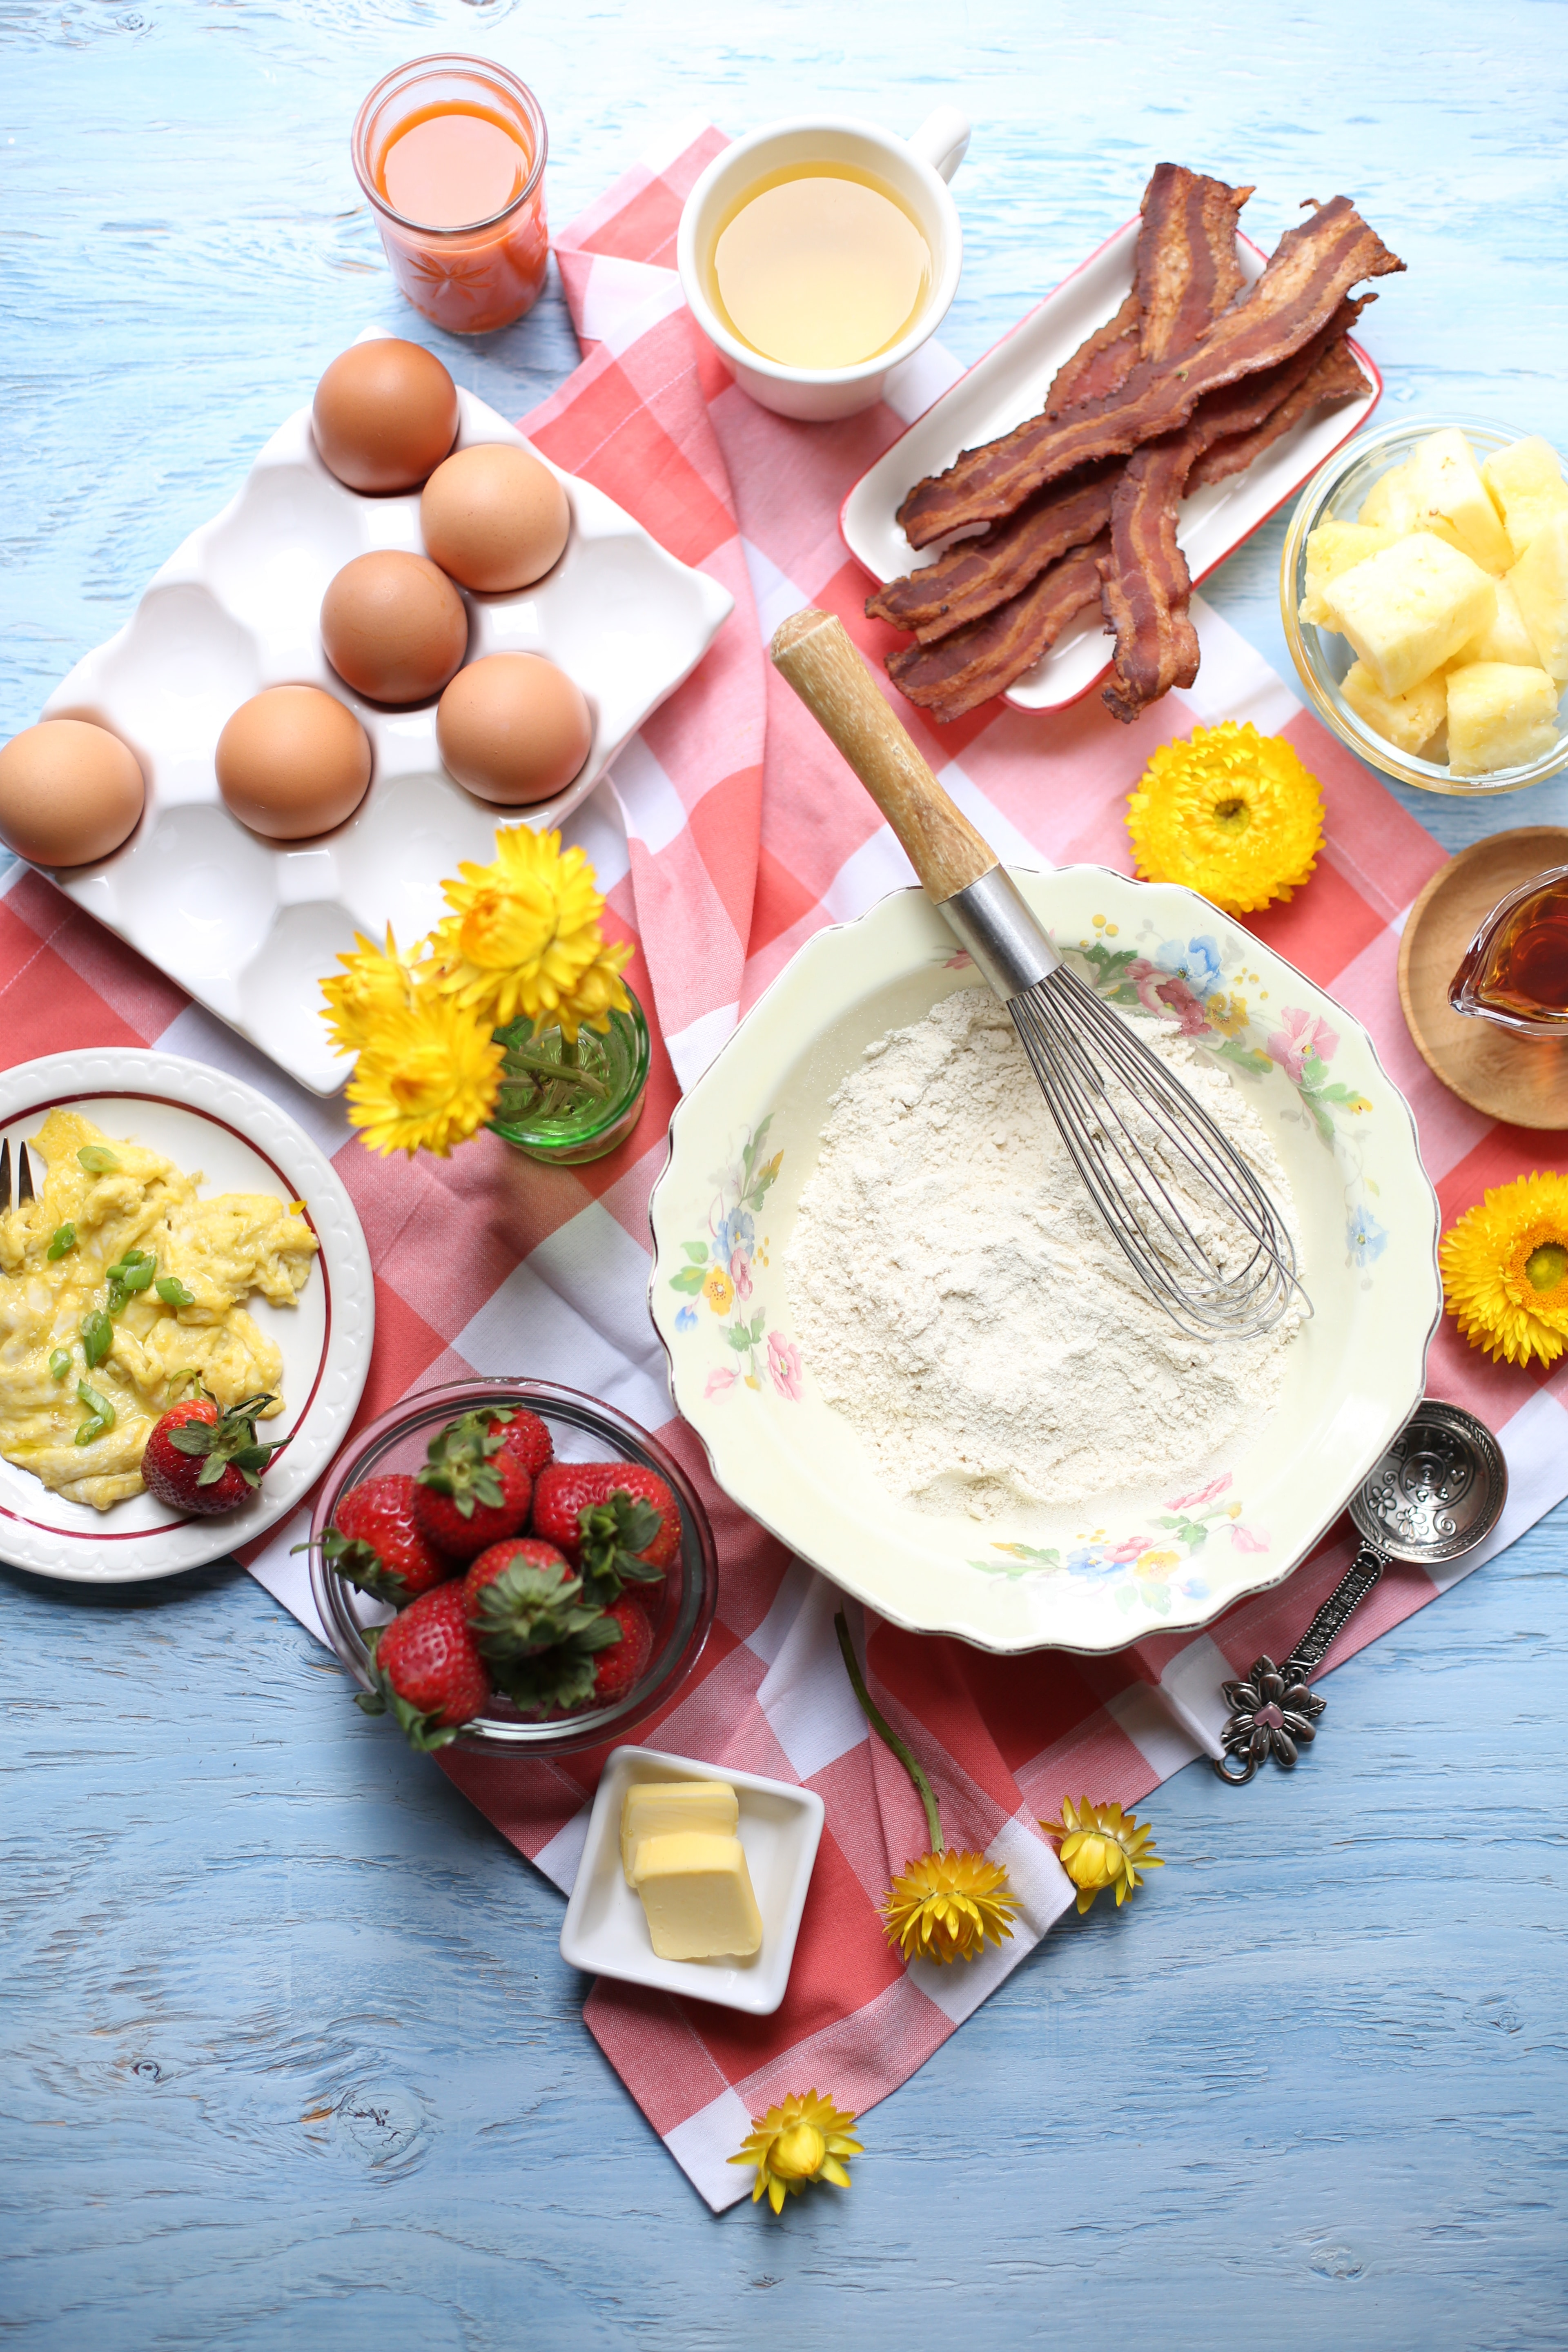 Ingredients on a red checked tablecloth on a blue table. Flour, strawberreis, eggs, bacon, butter and other breakfast items.